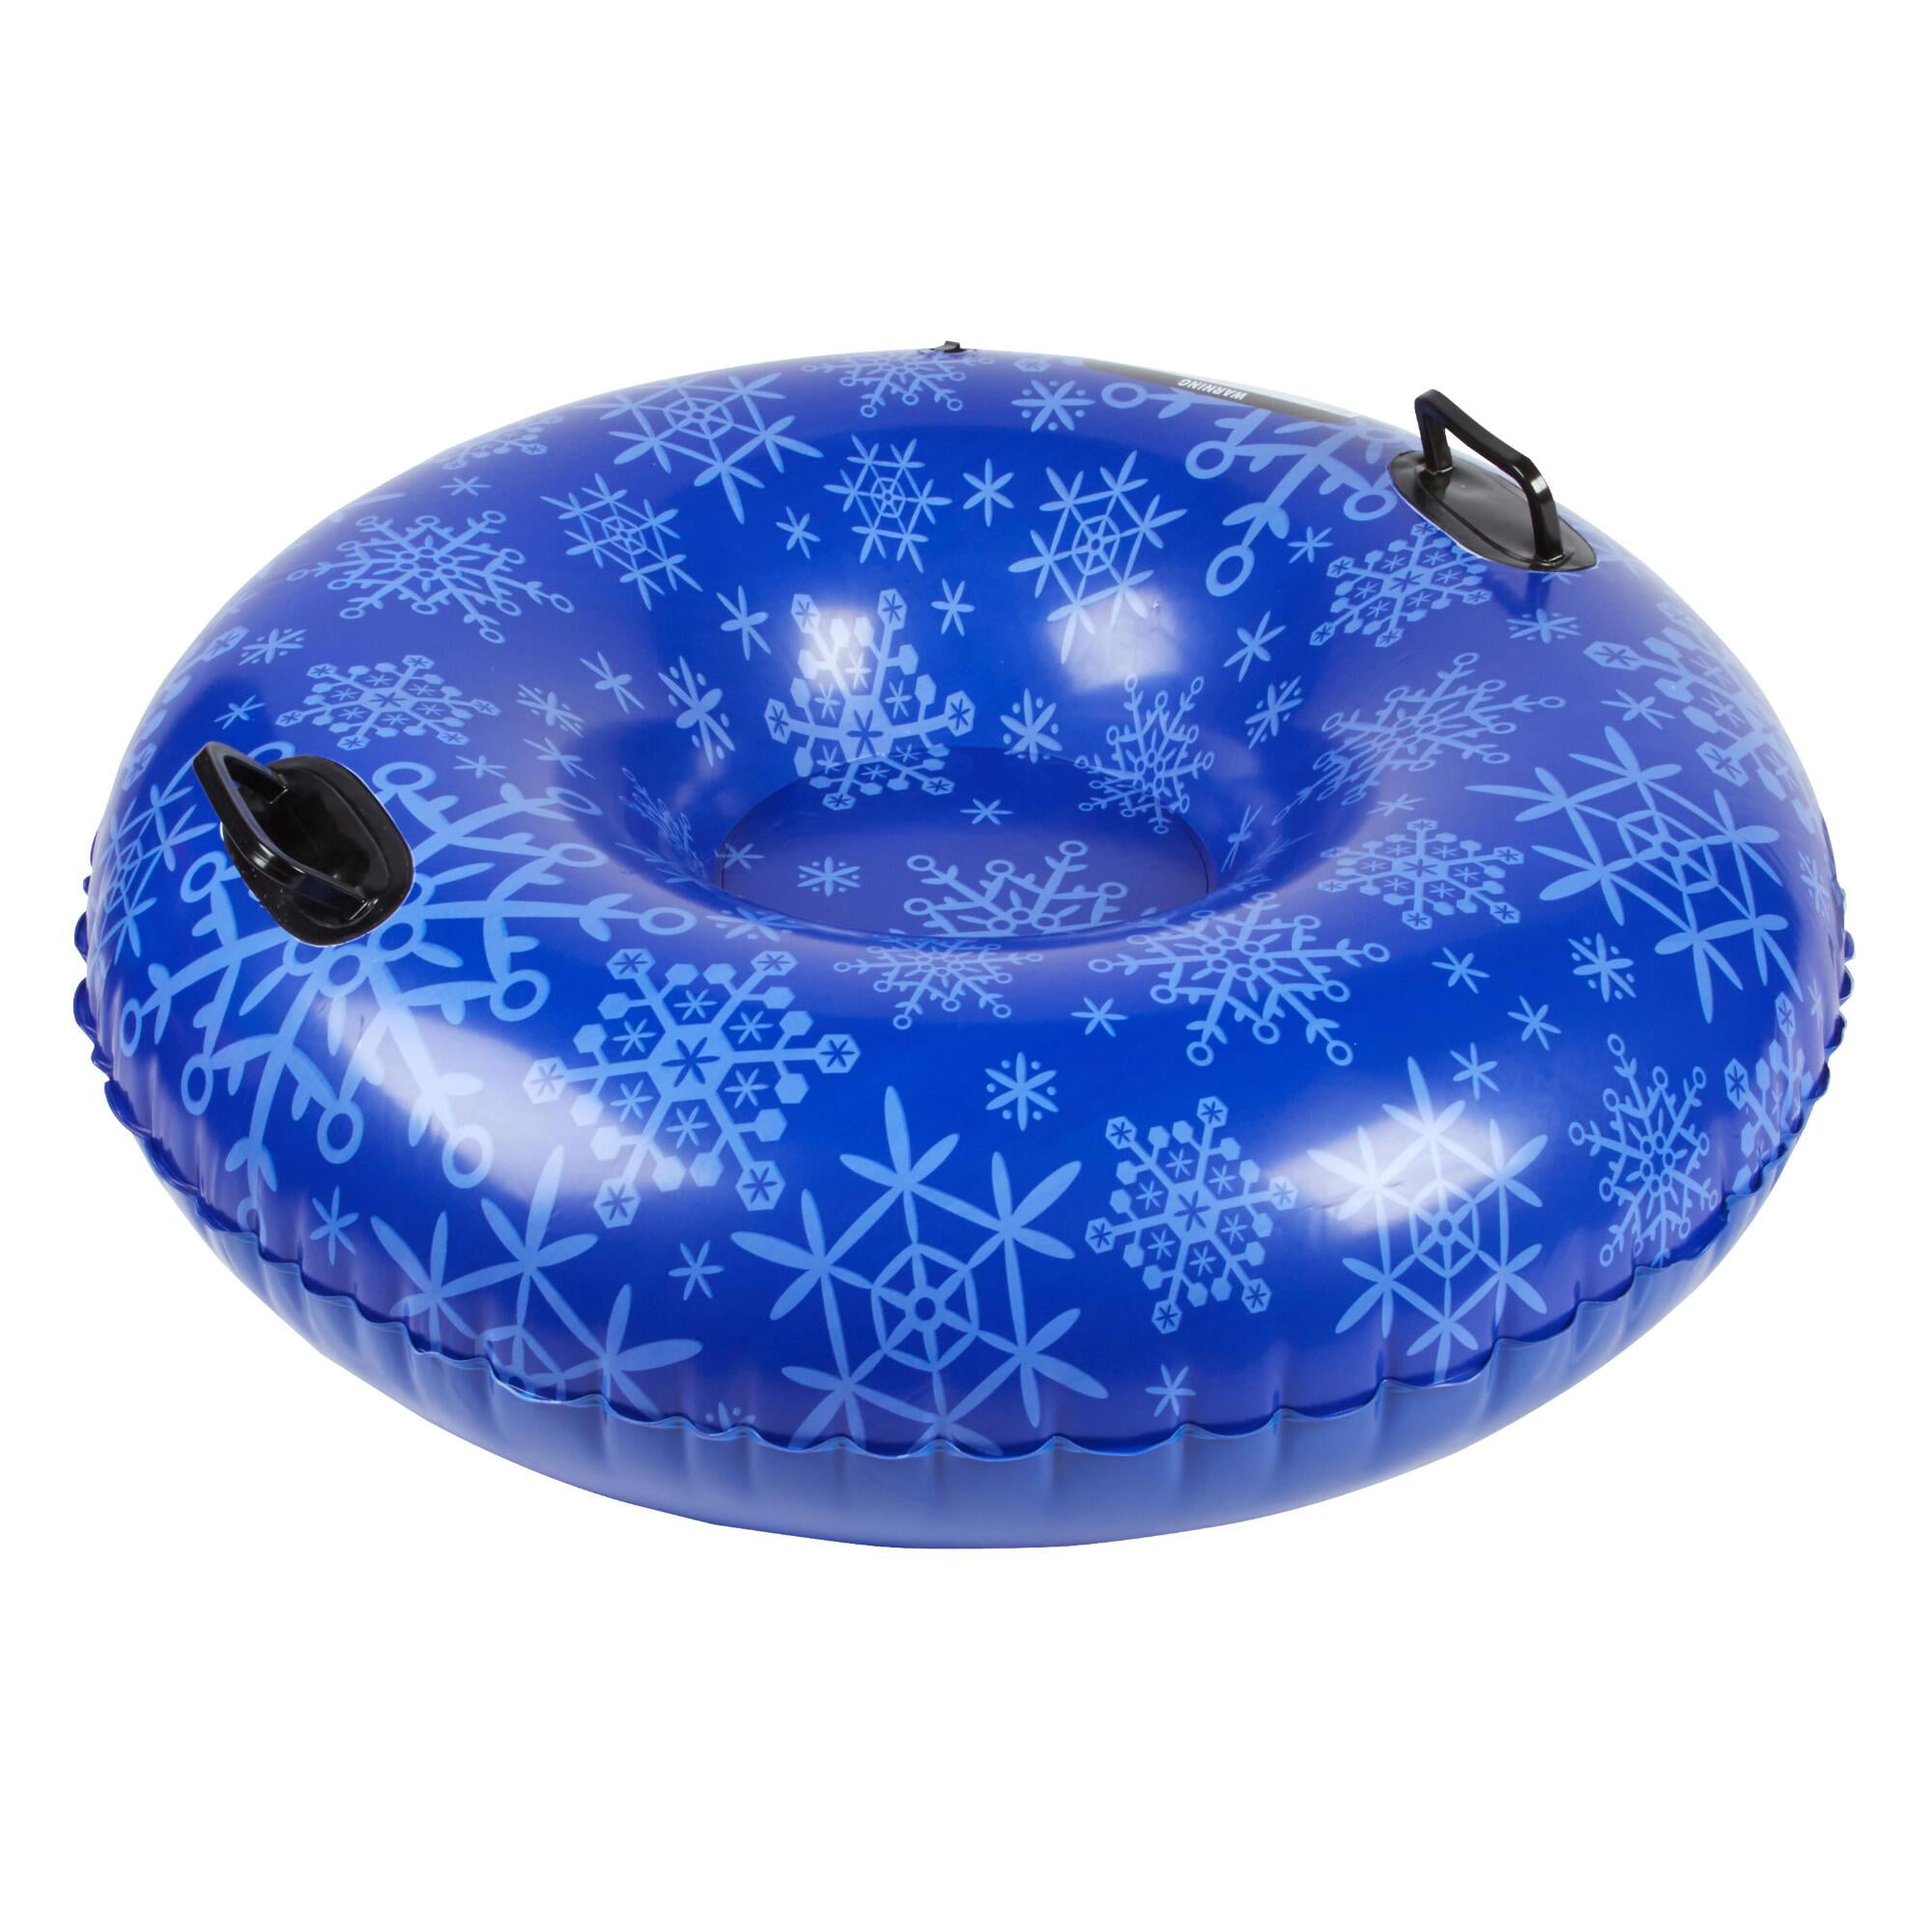 Blizzard King 42-Inch Inflatable Snow Tube Sled, Blue Snowflake by Blizzard King